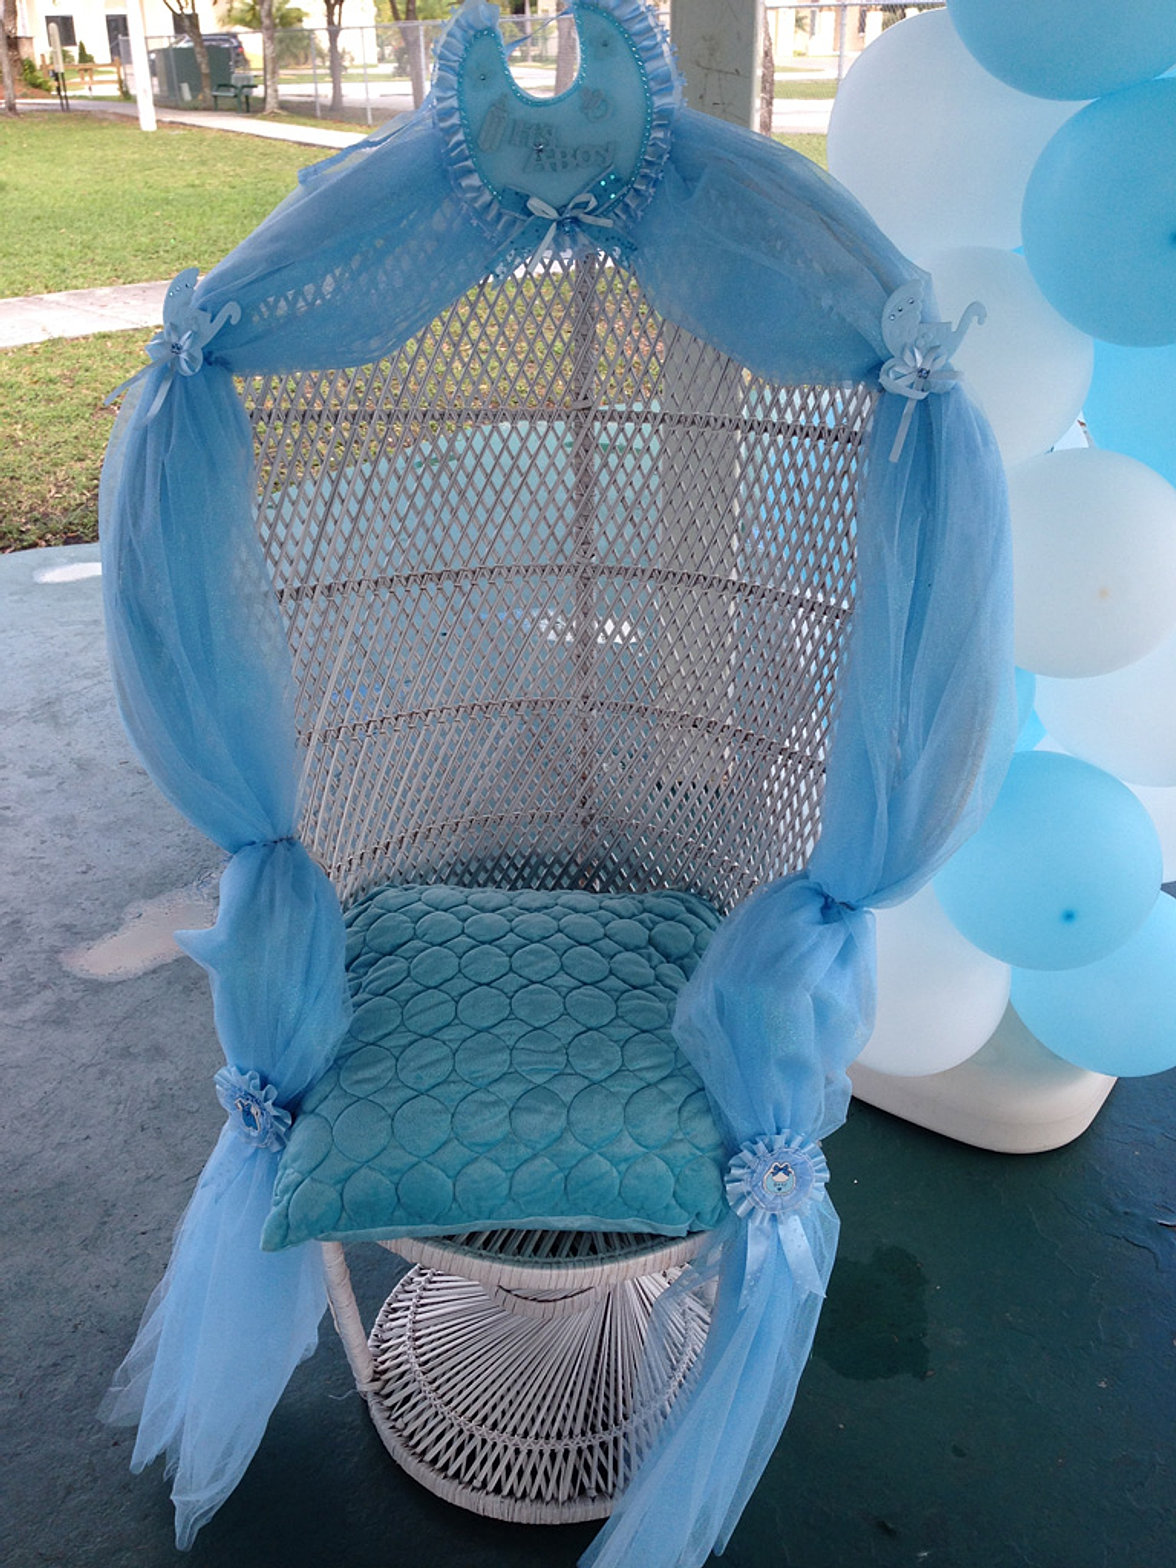 Baby shower chair - Baby Shower Chair Rental